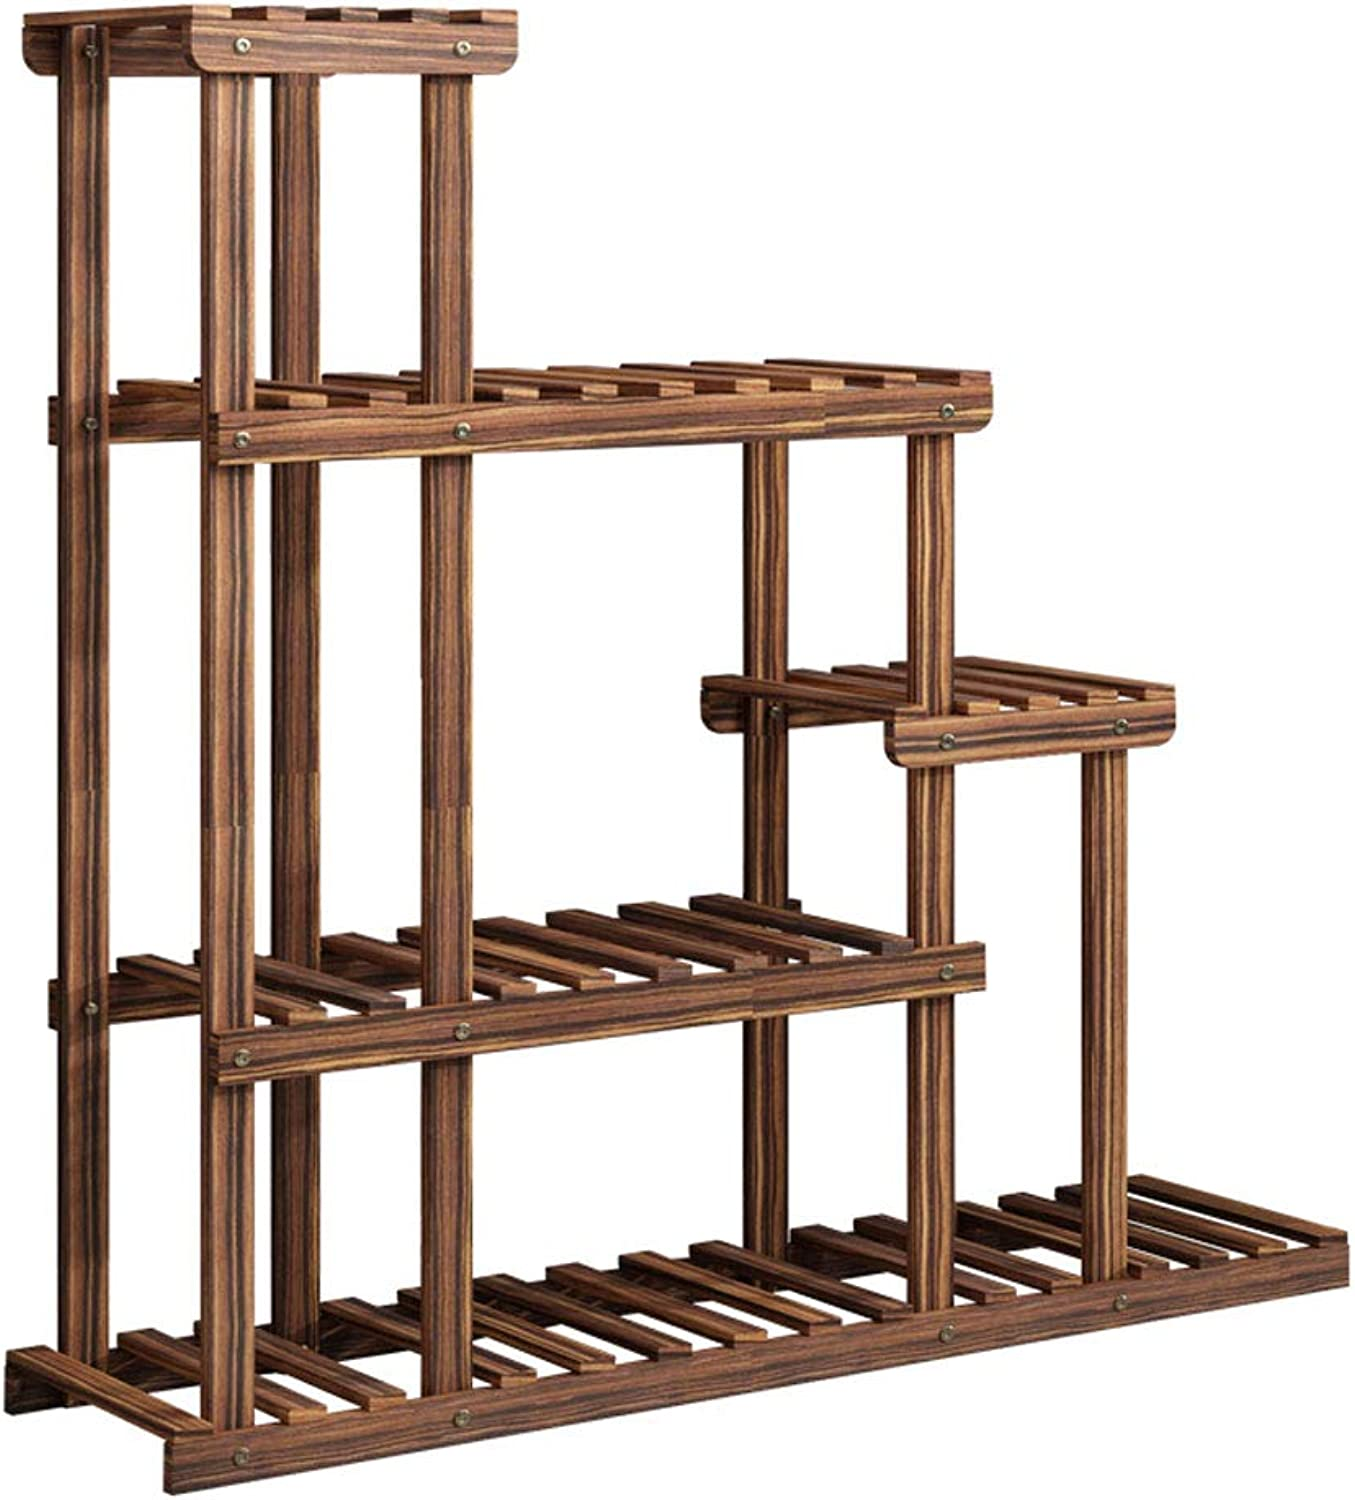 SYF Ground Flower Pot Display Stand Multi-Purpose Rack Solid Wood Flower Stand Carbonized Wood Multi-Layer Living Room Balcony Room Built-in Rack A+ (color   A, Size   with Wheel+guardrail)